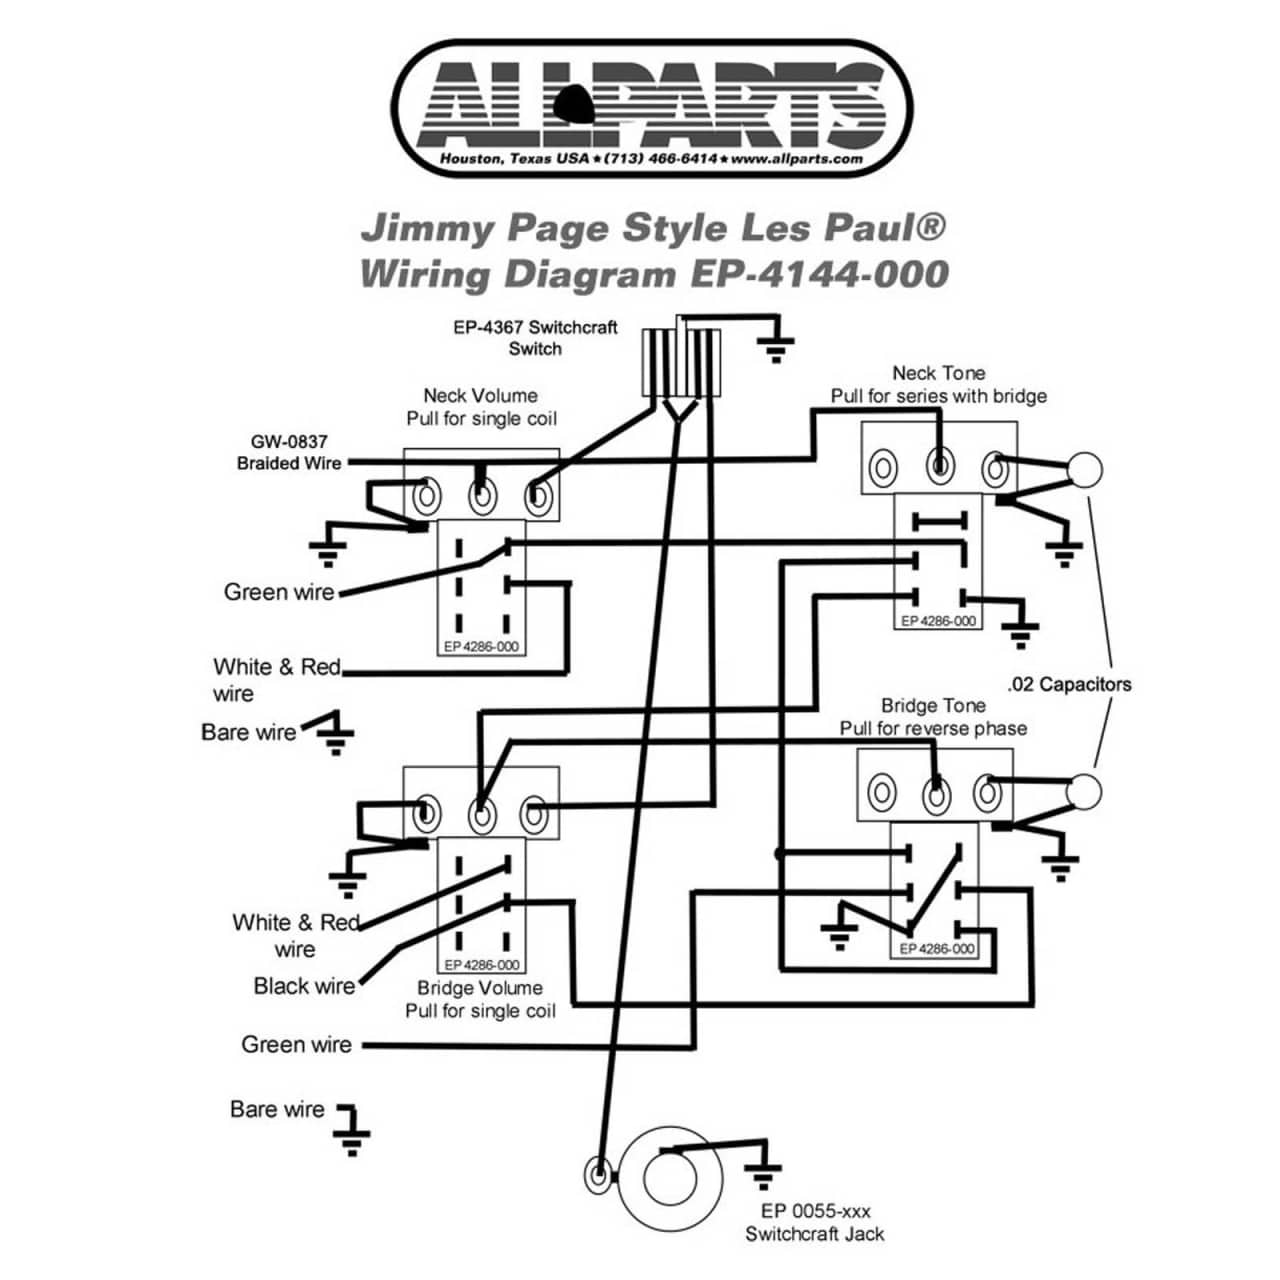 Gibson Les Paul Drawing At Free For Personal Use Standard Wiring Diagram Four Conductor 1280x1280 Kit Jimmy Page Complete With Reverb